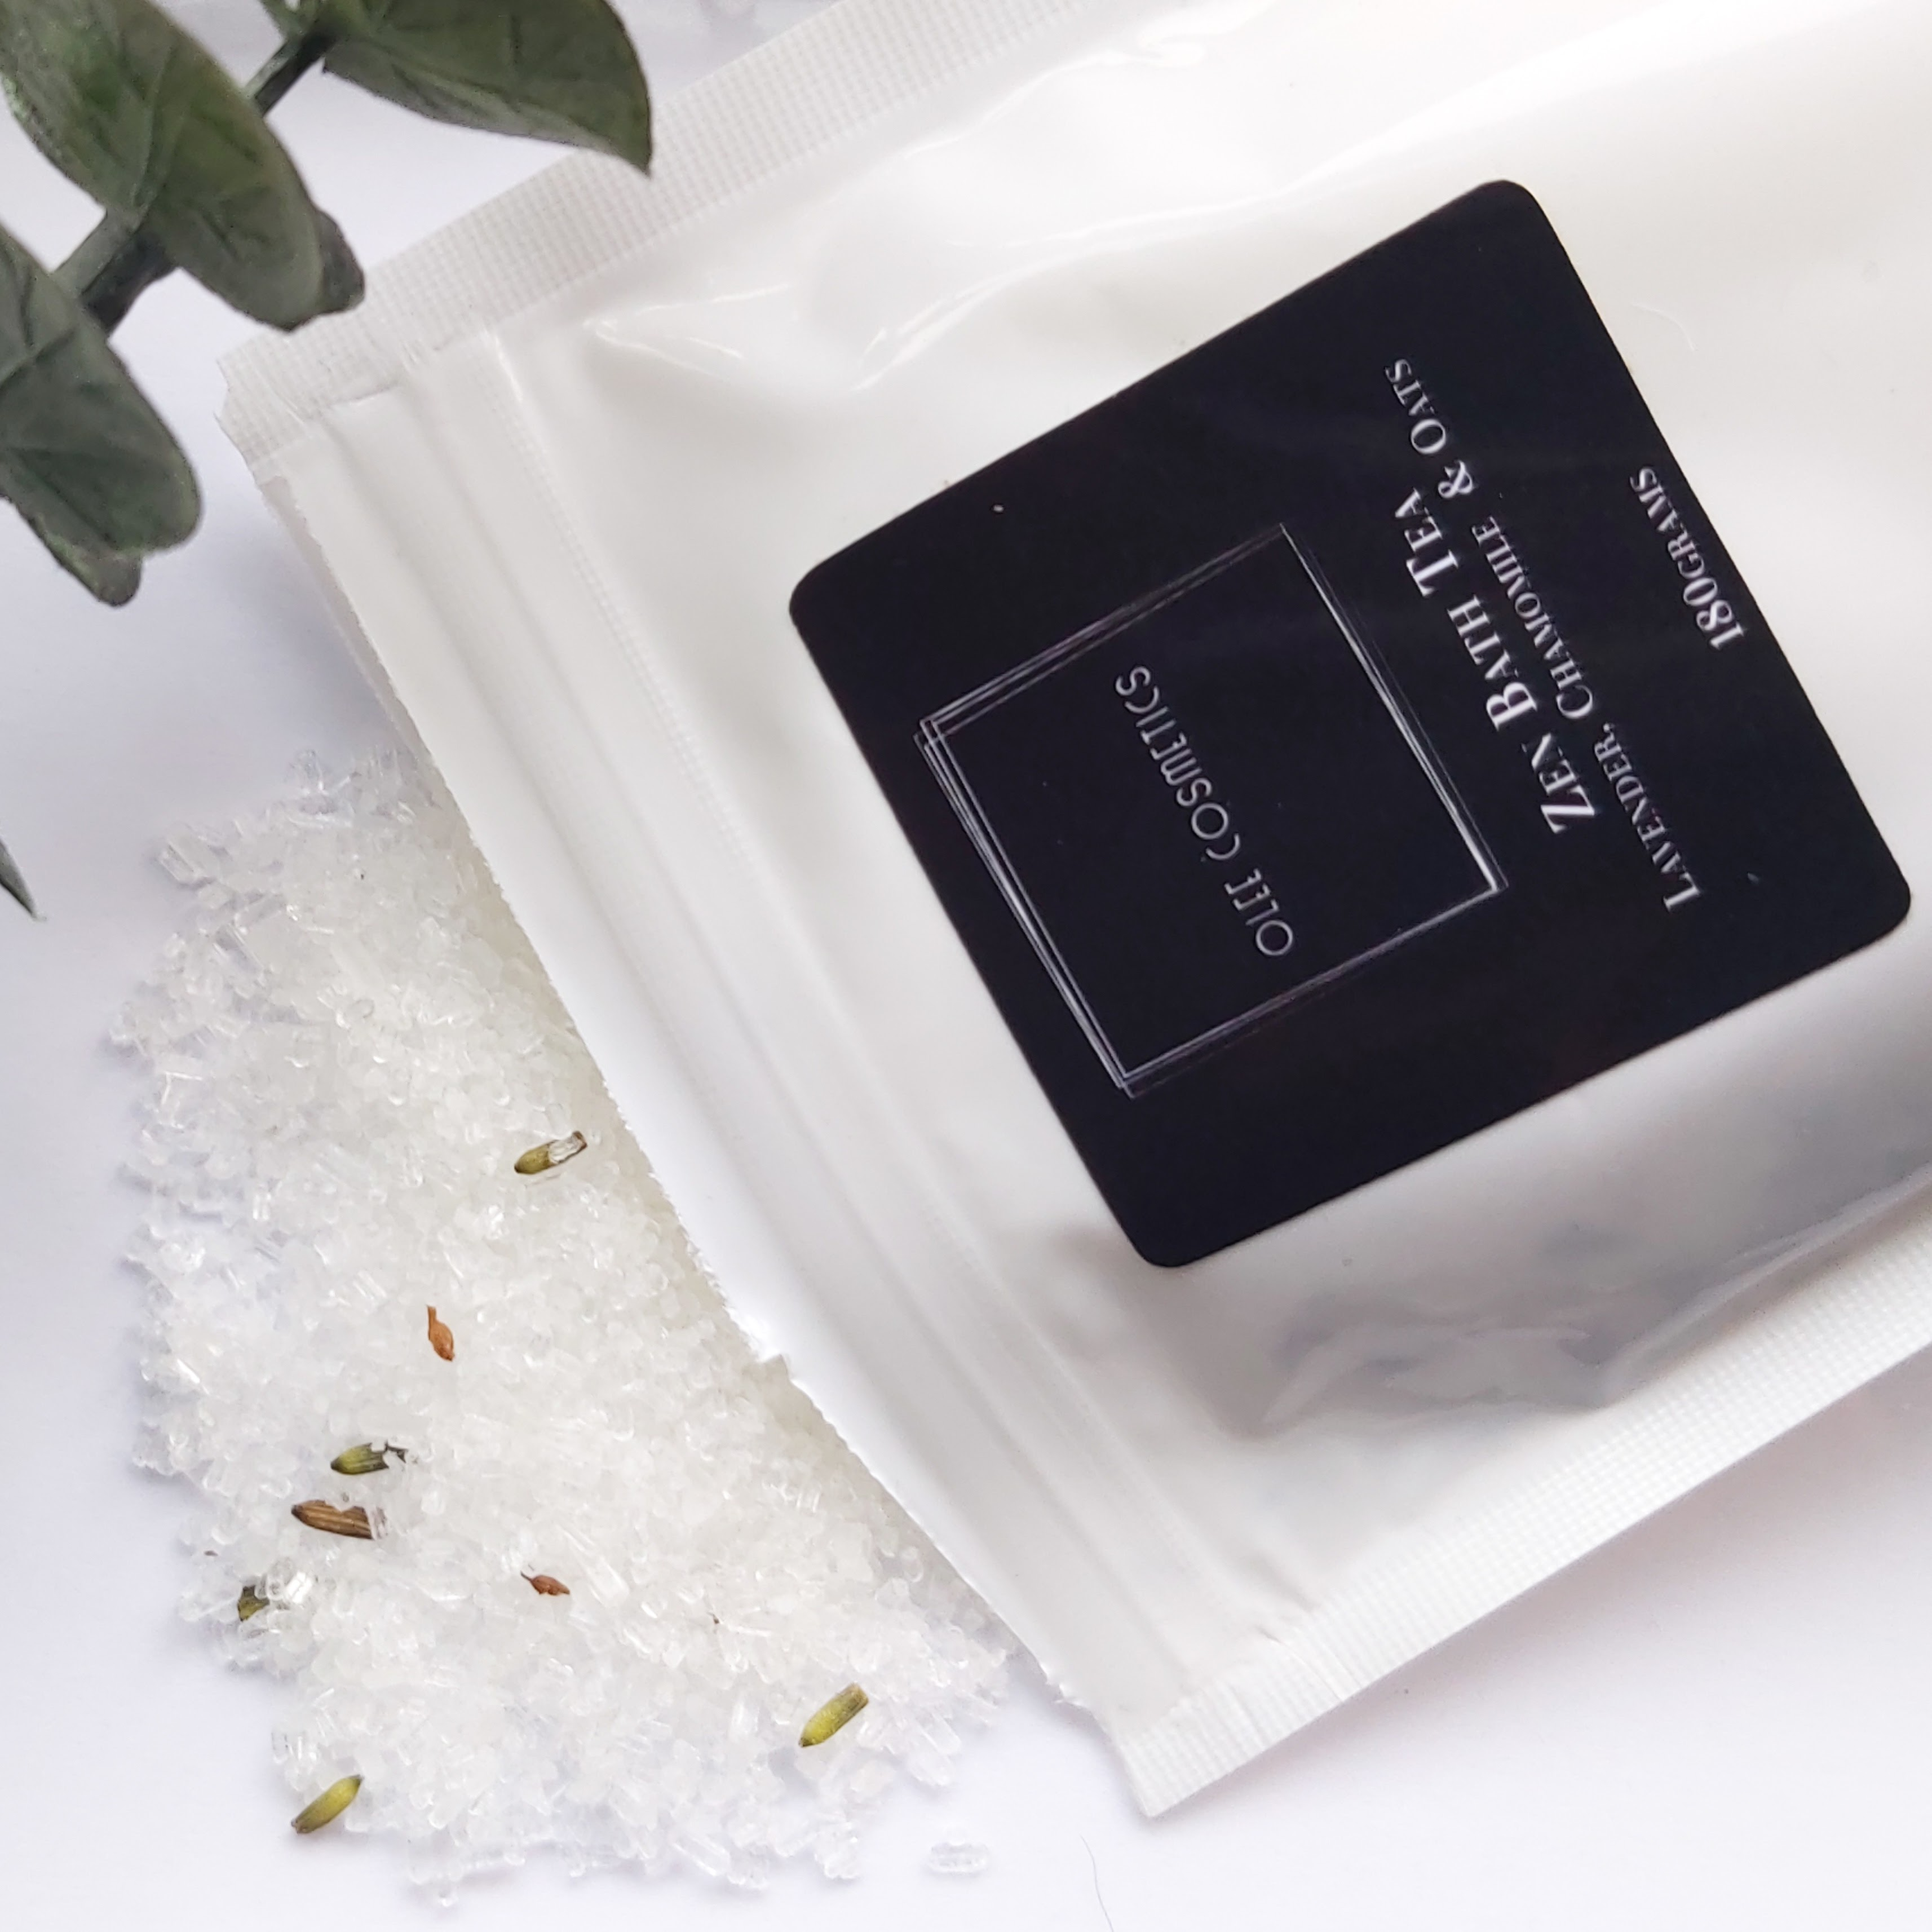 Olee Cosmetics Zen Bath Tea review by Beauty Folio, Natural and Green Beauty Blogger.